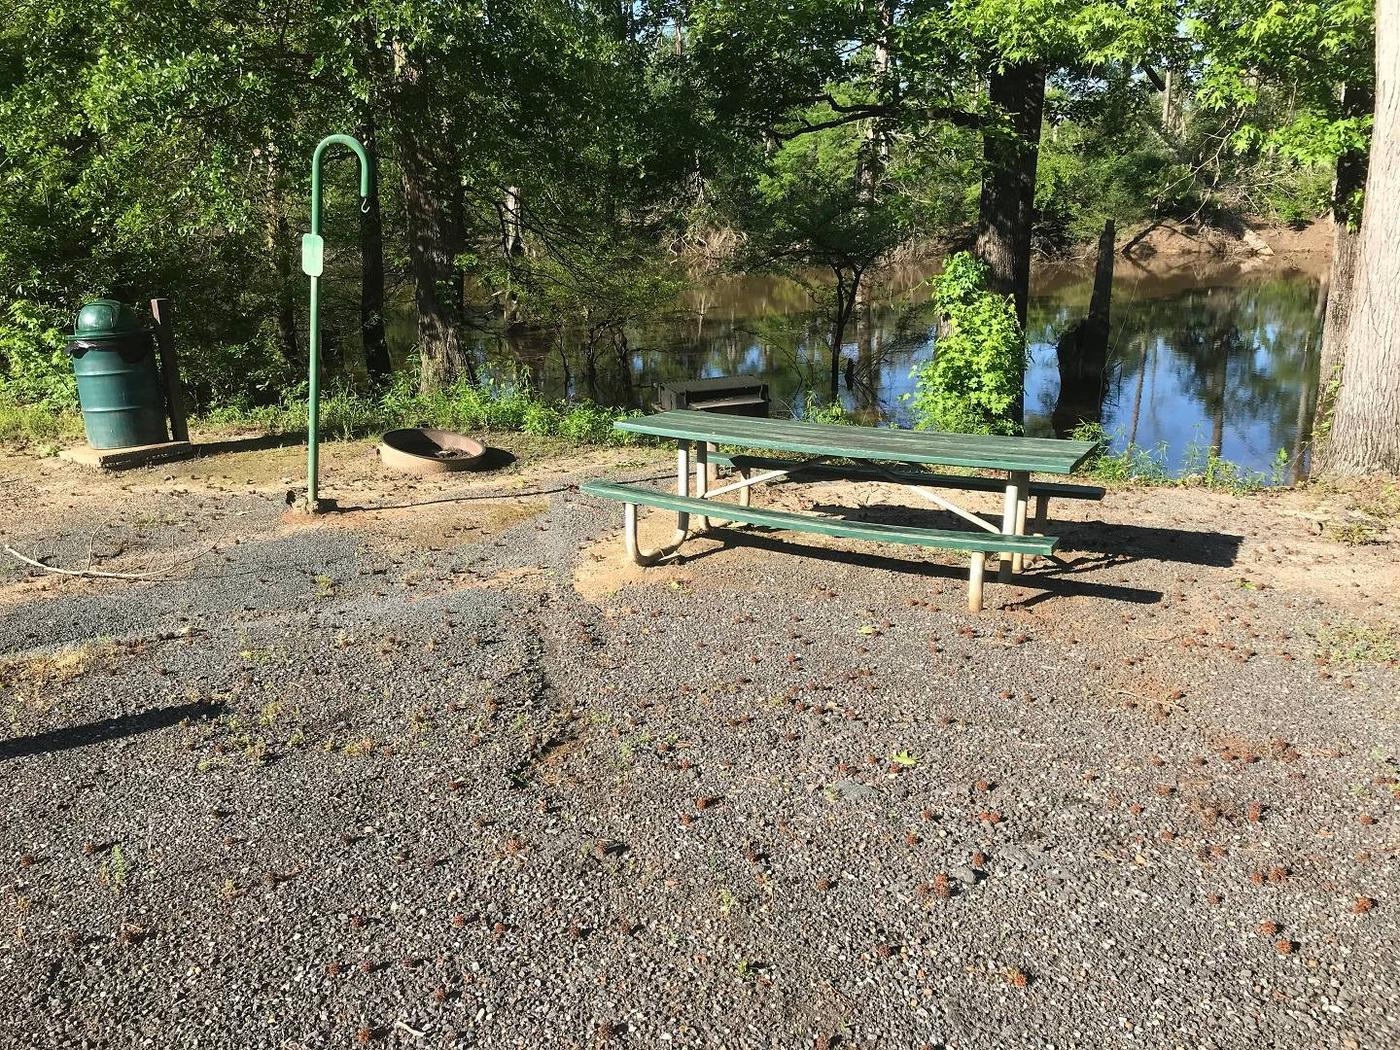 Campsite #2.Campsite #2. Tent site with the following amenities: fire-pit, grill, picnic table, lantern pole, trash can.  Located along bayou.